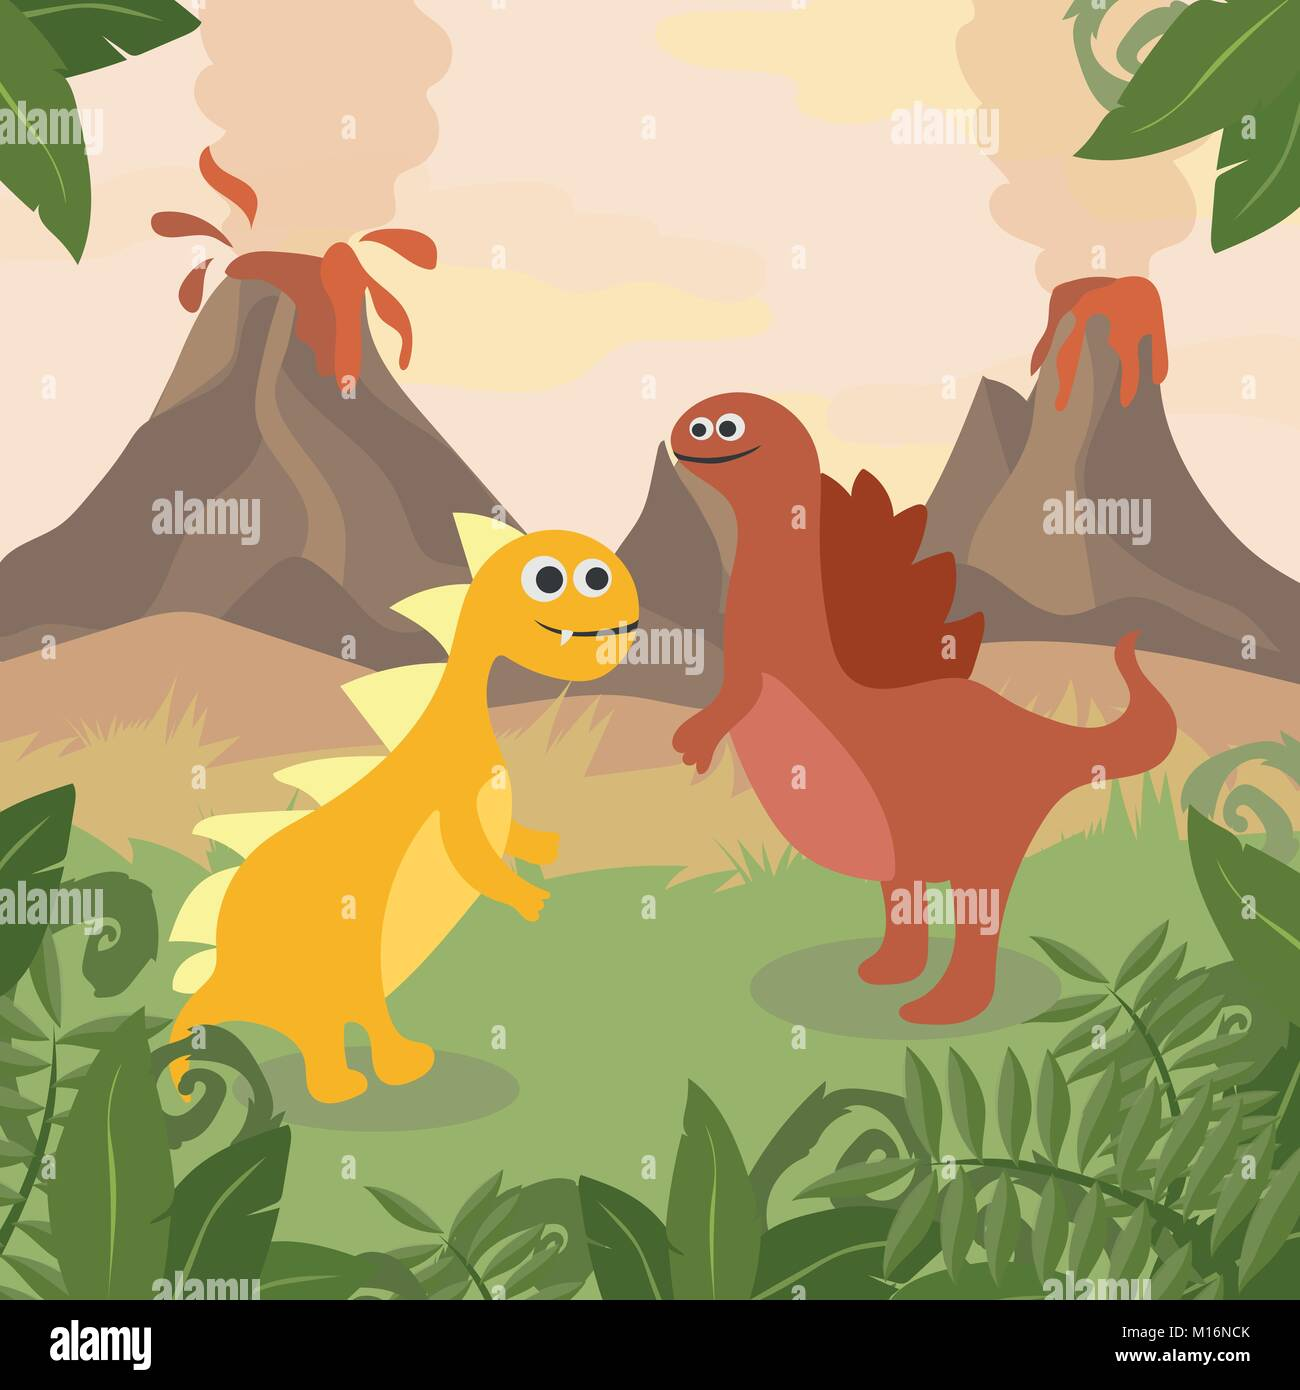 Prehistoric wildlife. Nature landscape with dinos, mountains, volcanos - Stock Vector